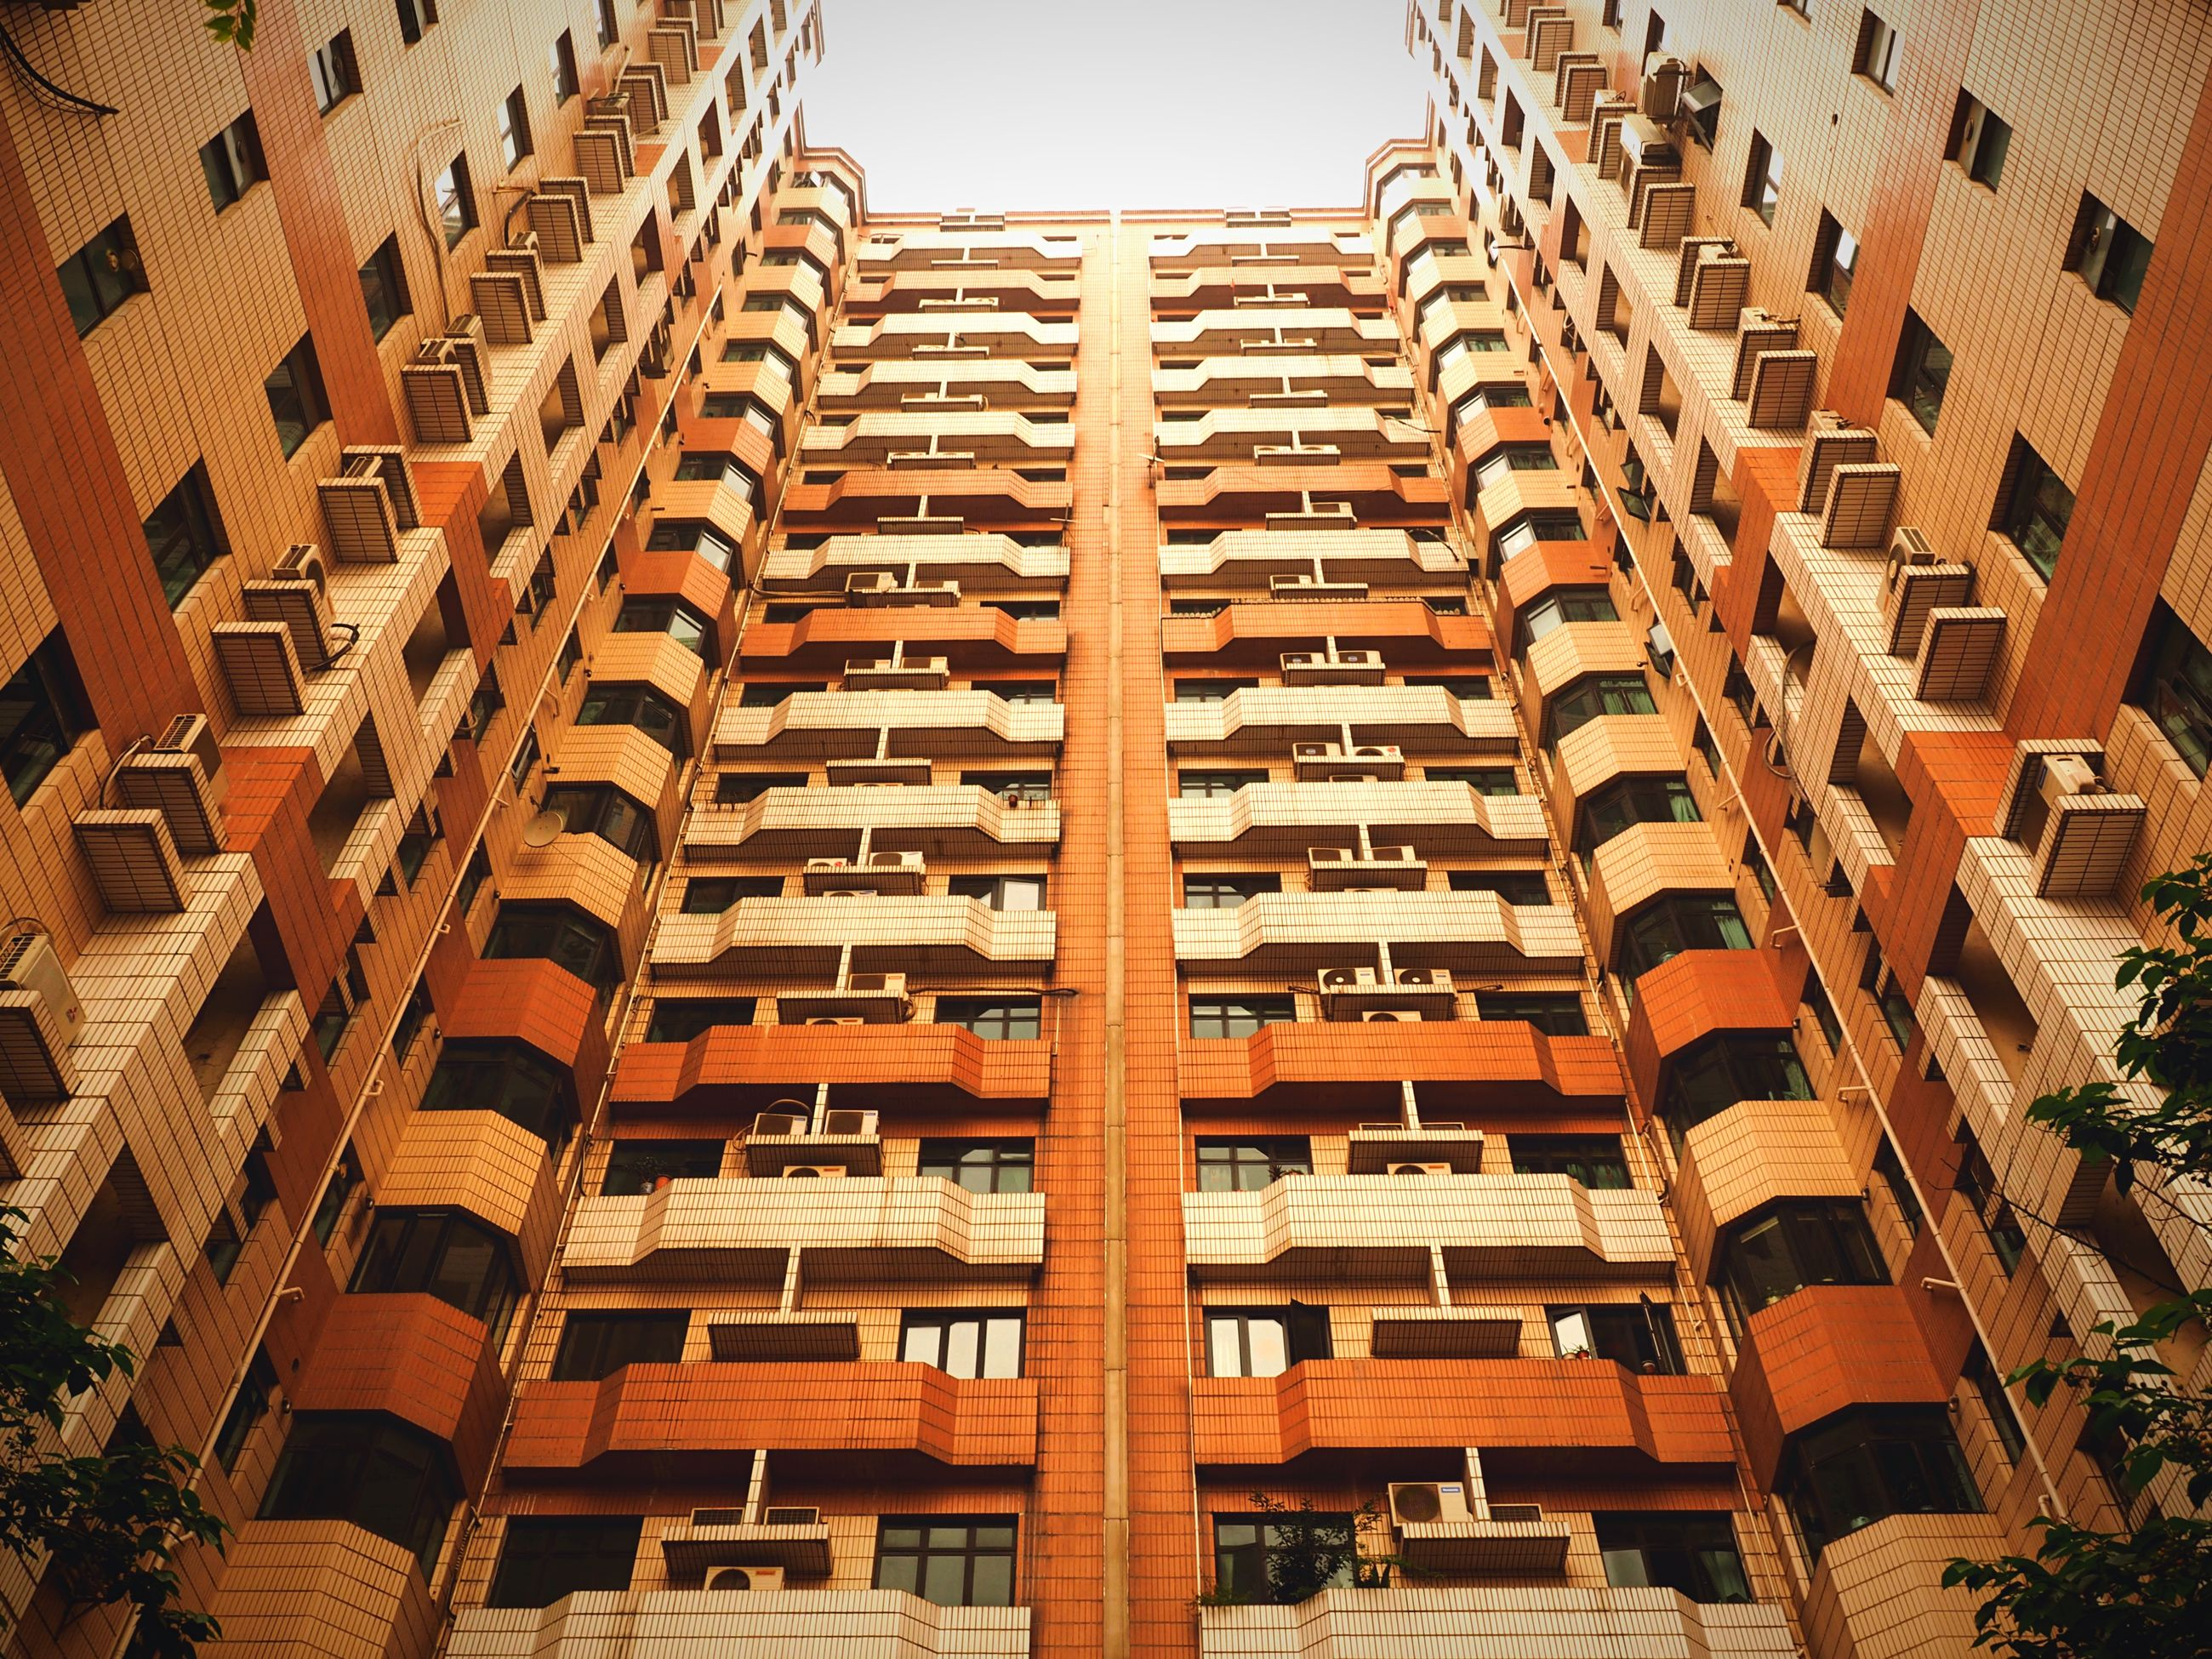 architecture, building exterior, built structure, low angle view, residential building, city, building, in a row, residential structure, window, repetition, office building, modern, roof, apartment, full frame, day, outdoors, clear sky, no people